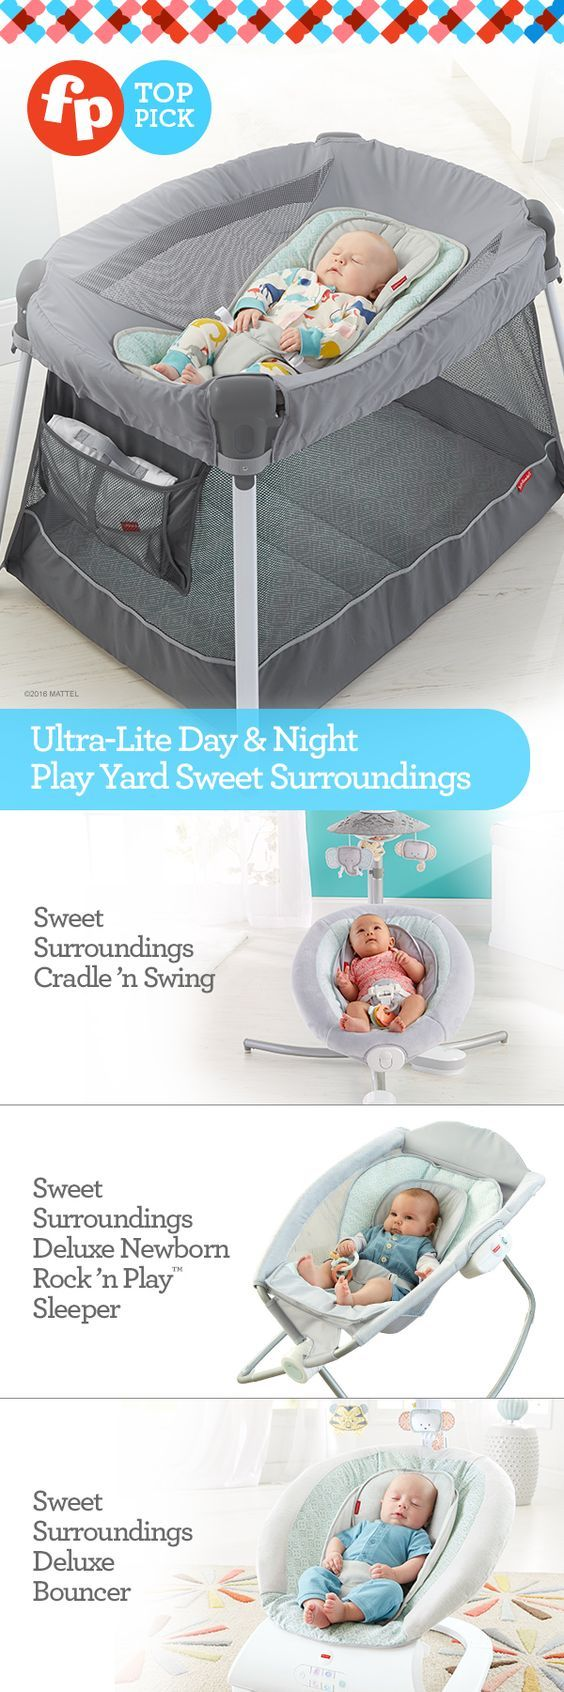 Surround baby in comfort and style with the Sweet Surroundings Collection. Take some weight off your shoulders with a portable play yard that's just half the weight of other popular play yards, with all the same great features, and more. At only 15 lbs., it's super lightweight and easy-peasy to pop up, take down and pack away in just a few quick, simple steps. The Ultra-Lite Day & Night Play Yard is a night saver – and a life saver.